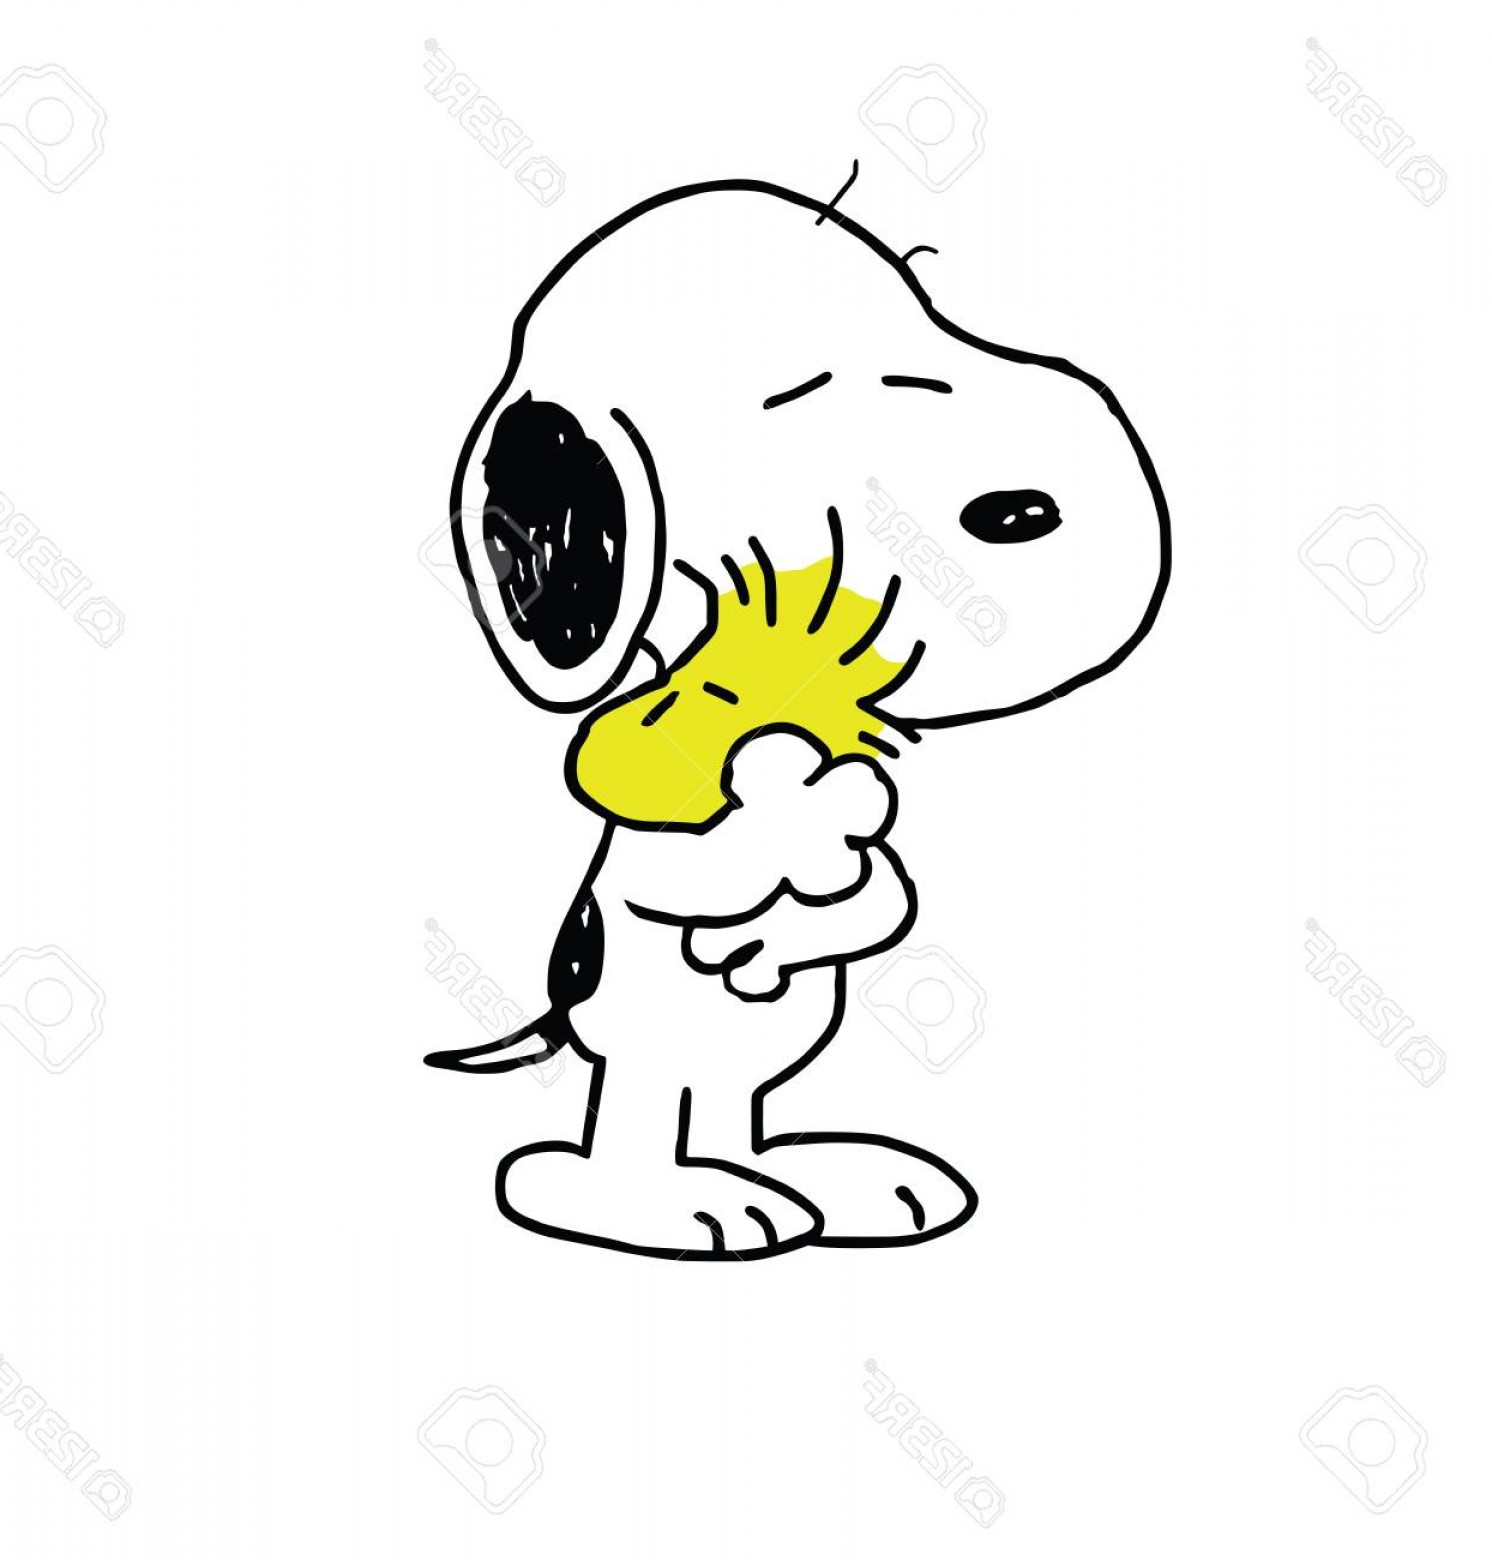 Snoopy Vector Graphic: Photowoodstock Peanuts And Snoopy Hugging Illustration Friends